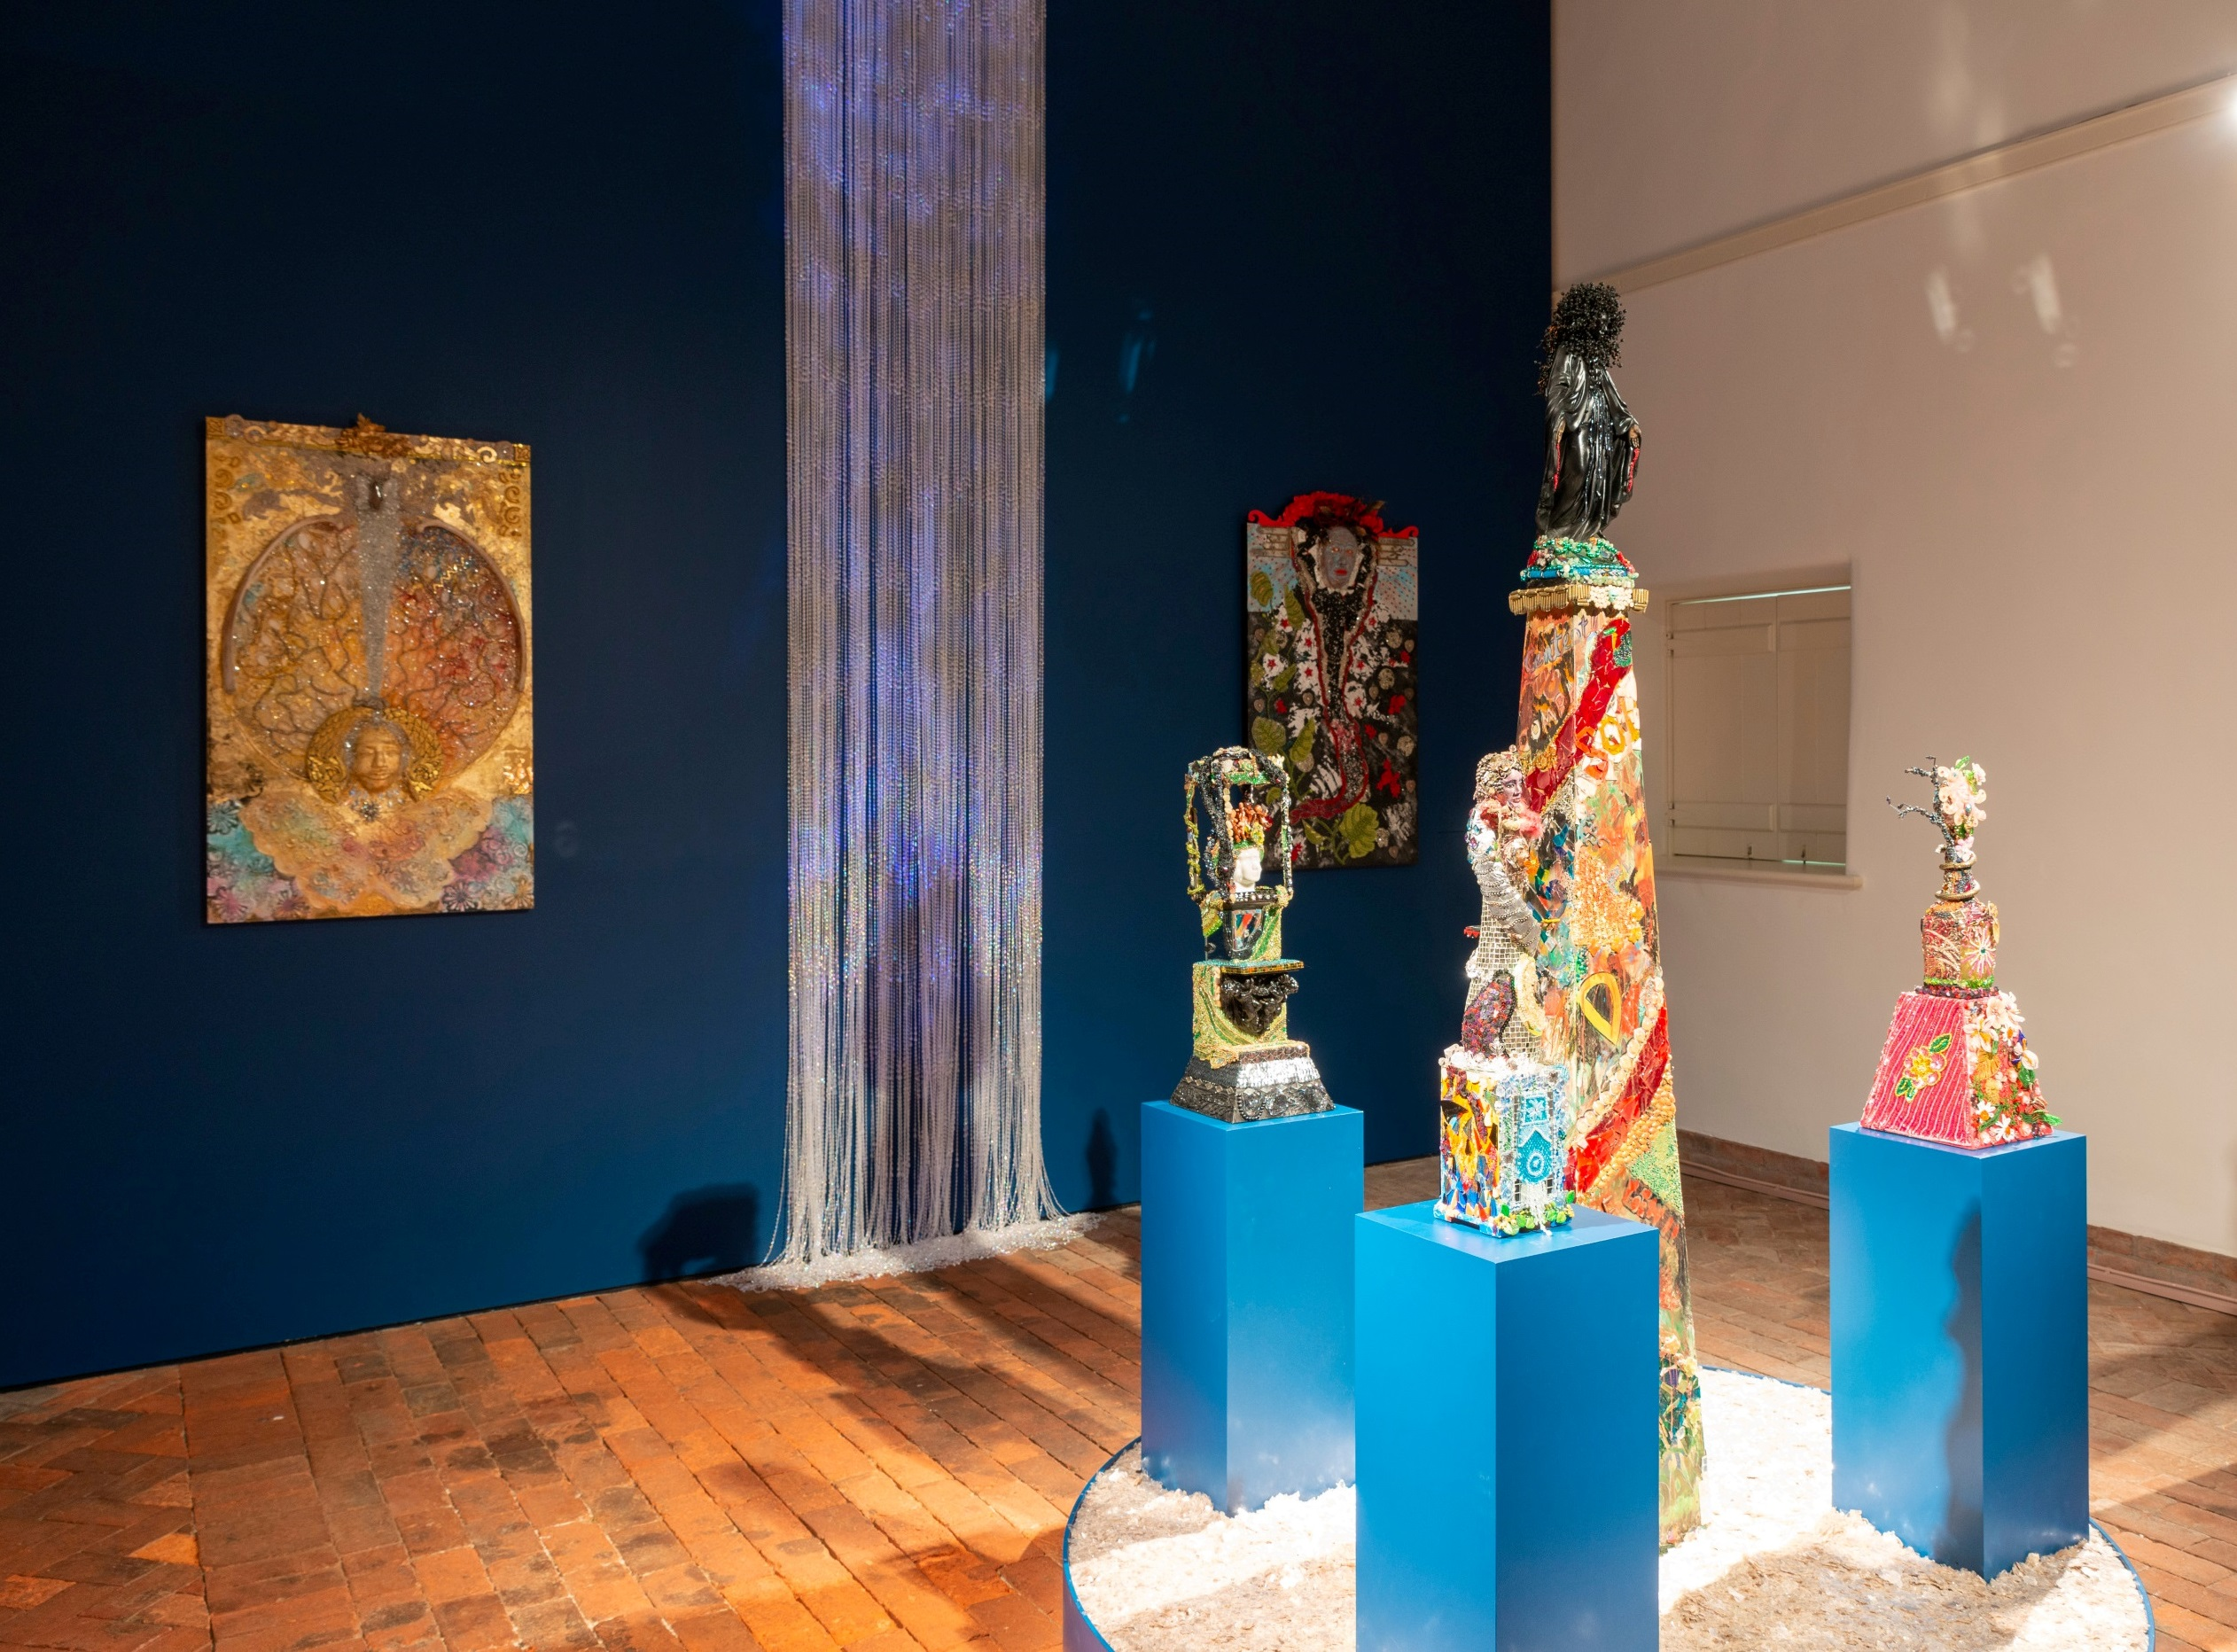 Oletha DeVane: Traces of the Spirit at the Baltimore Museum of Art, May 2019. Photo by Mitro Hood.